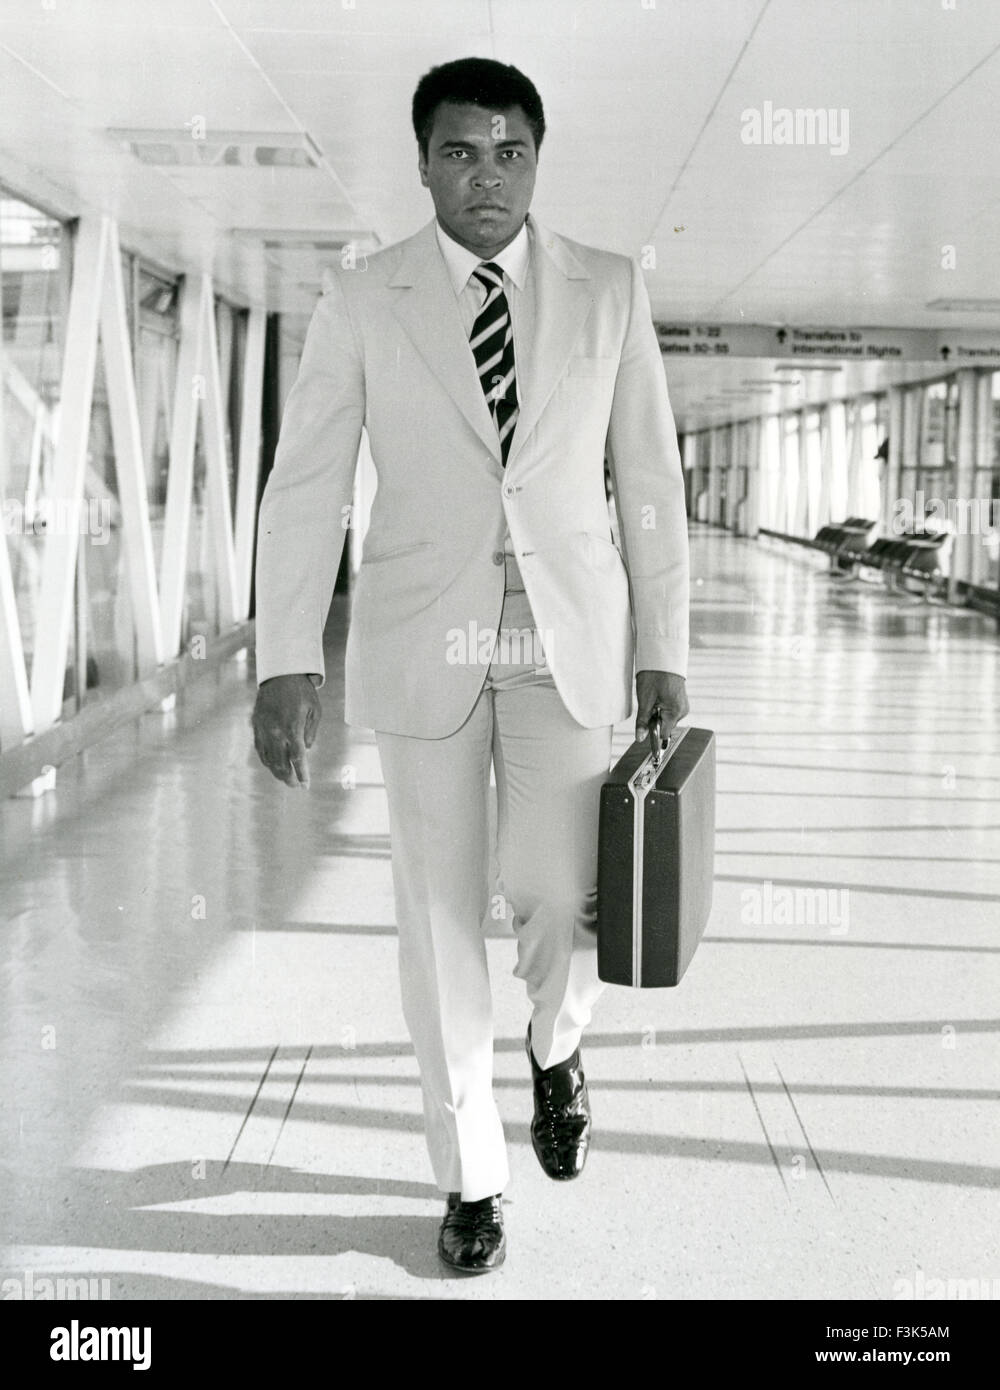 MUHAMMAD ALI  (Casius Clay) American boxer arriving at Heathrow airport about 1967 - Stock Image